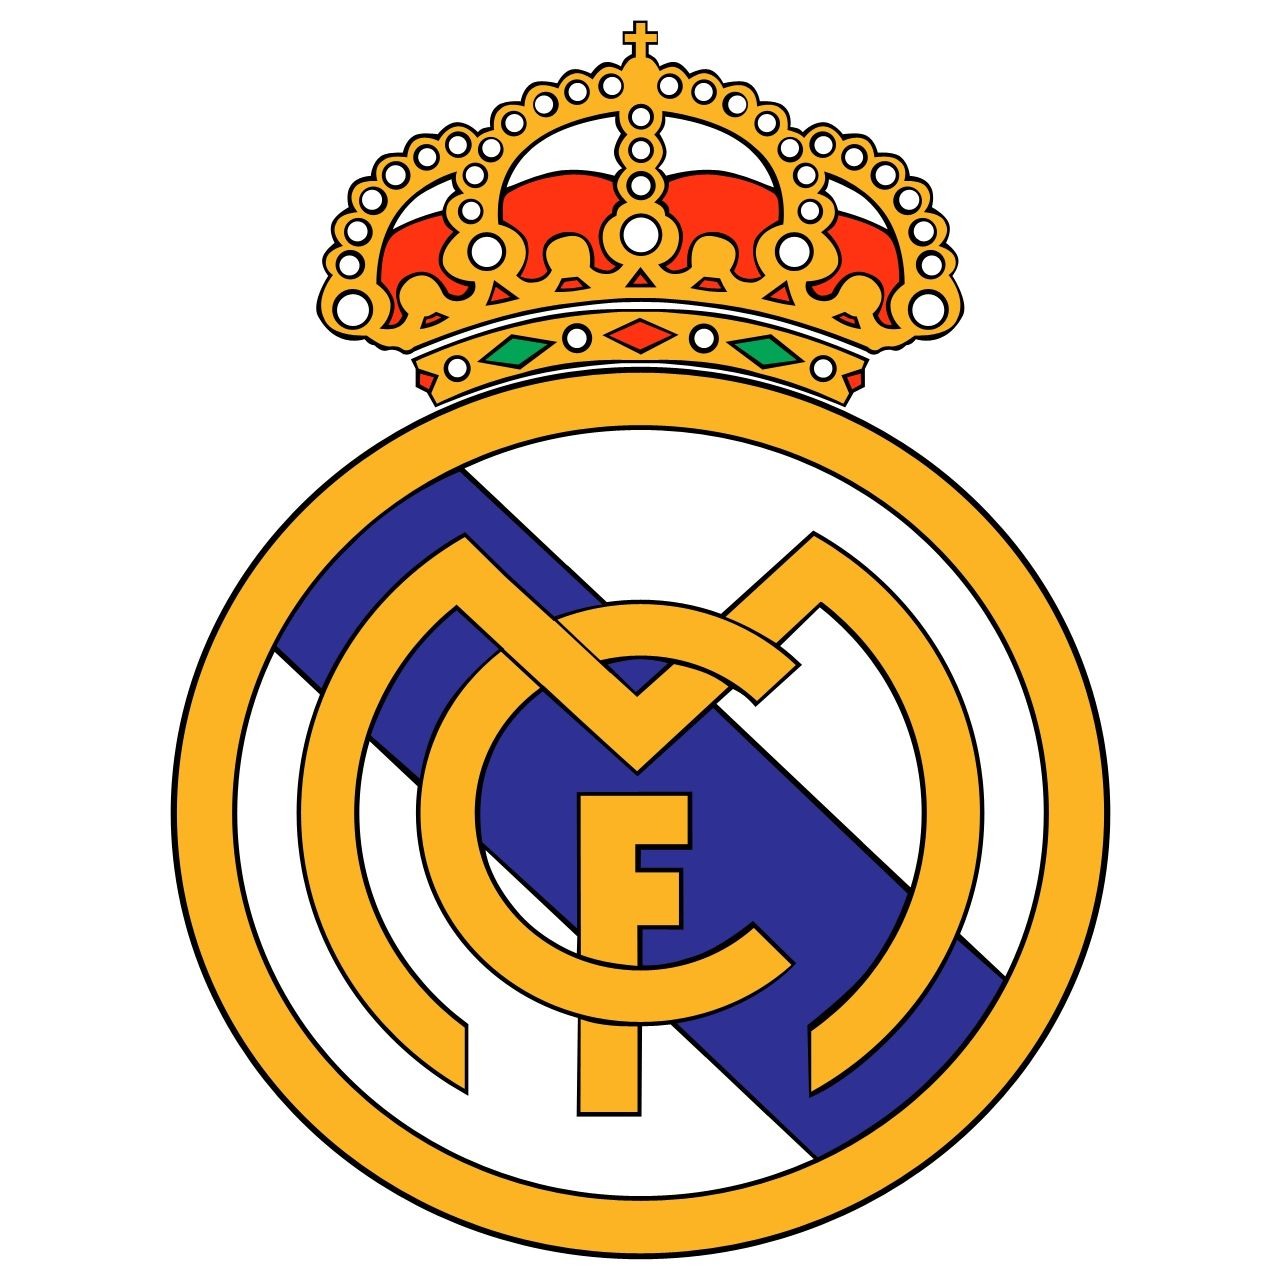 10 New Images Of Real Madrid Logo Full Hd 1080p For Pc Background Real Madrid Logo Real Madrid Football Real Madrid Football Club